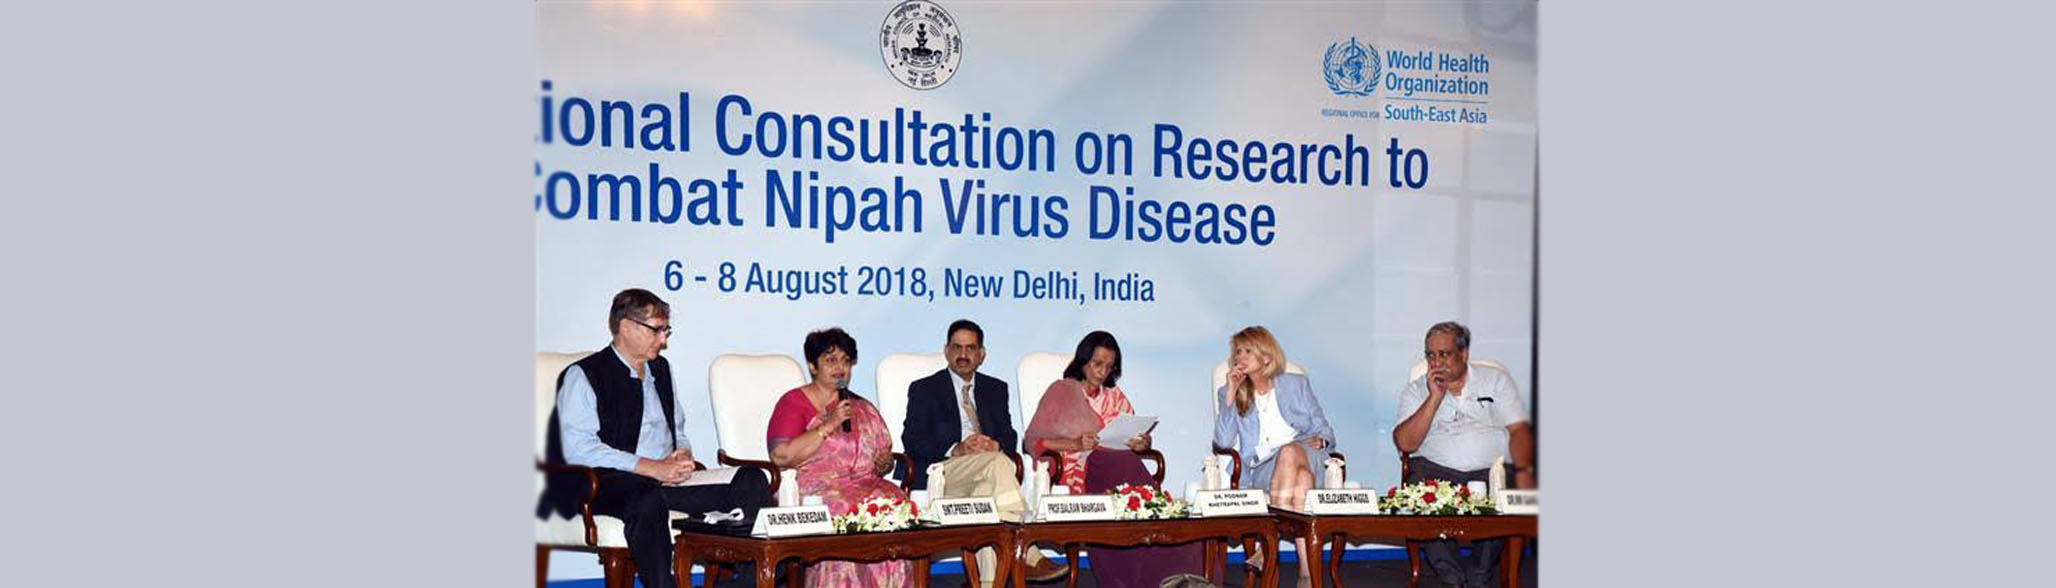 National Consultation on Research to Combat Nipah Virus Disease